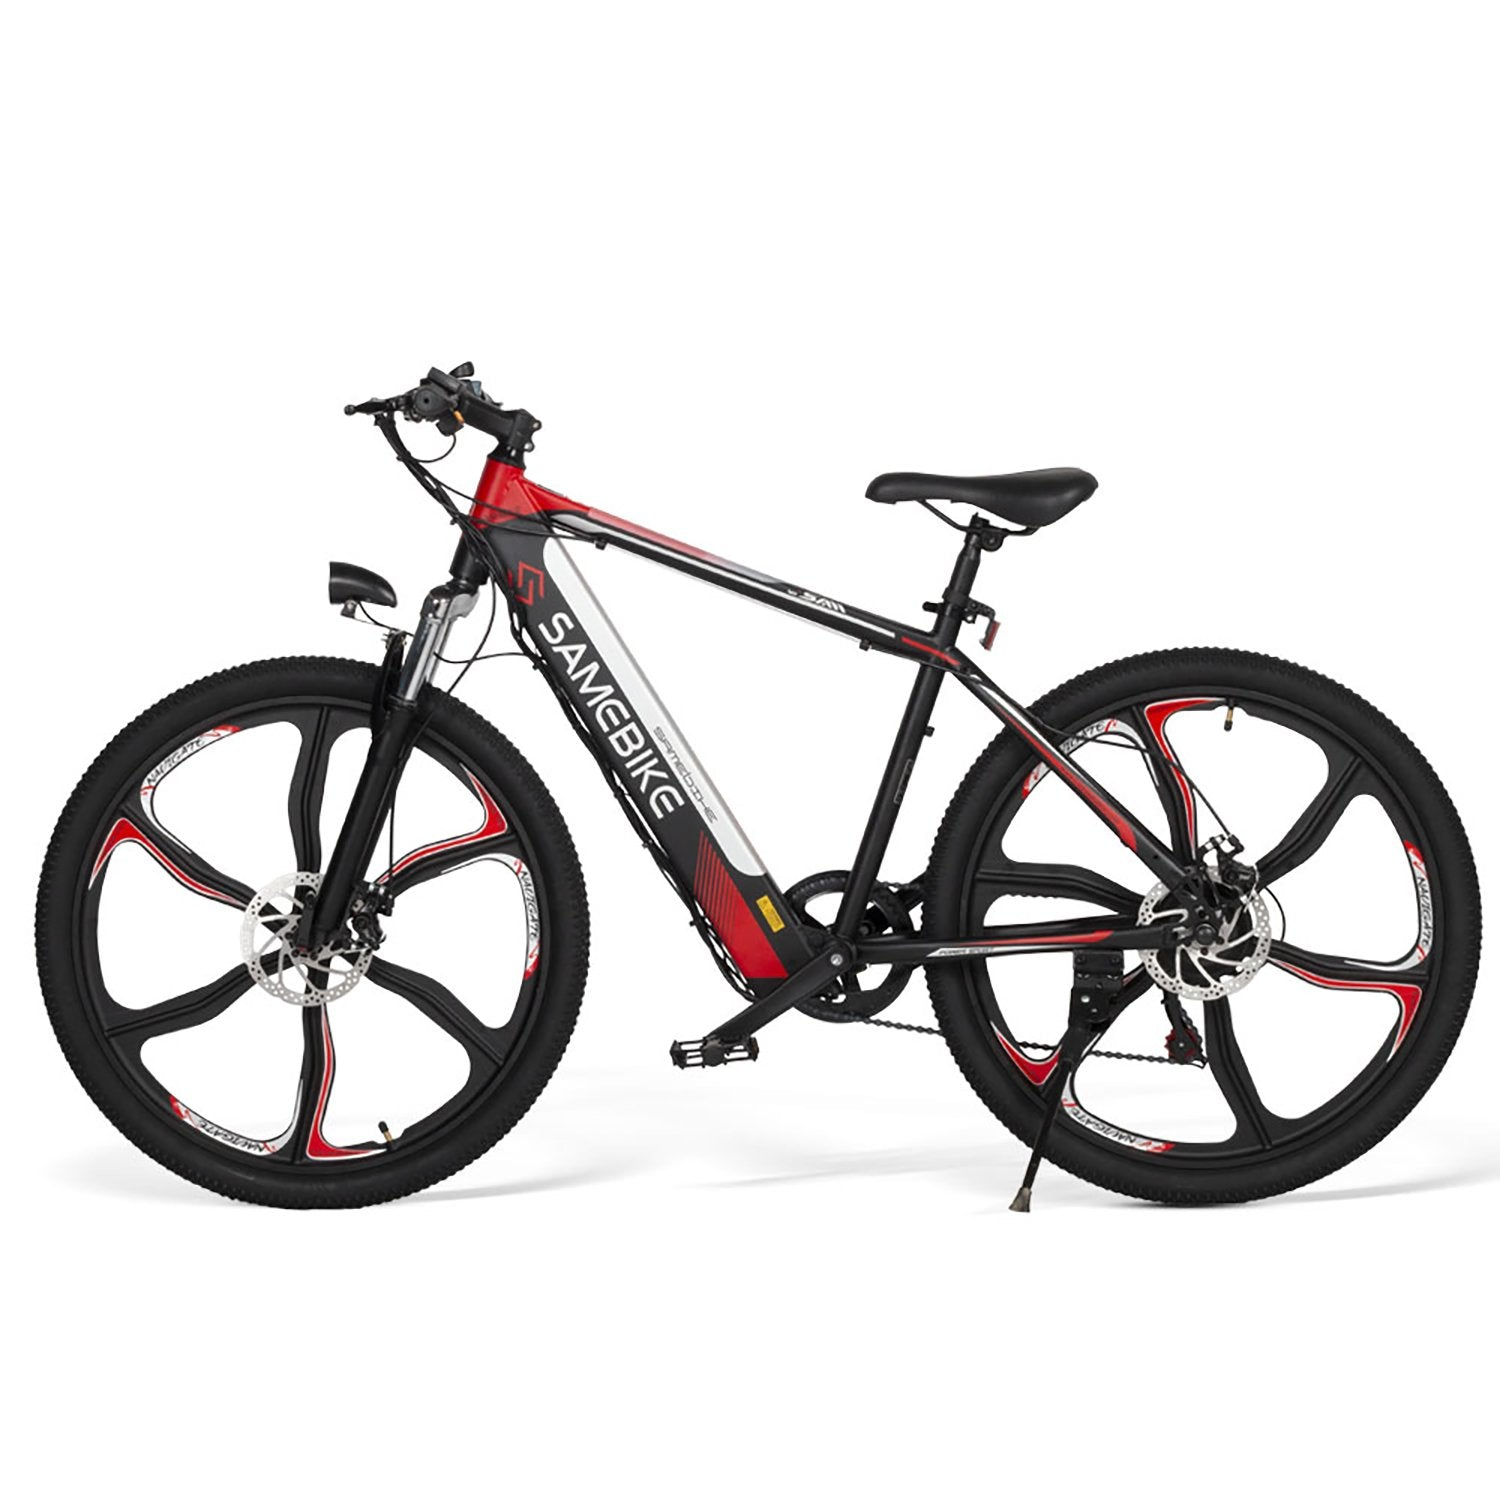 SAMEBIKE SH26 Electric Mountain Bike 26 Inch Tires 350W Motor 8Ah Battery Max 30 KPH